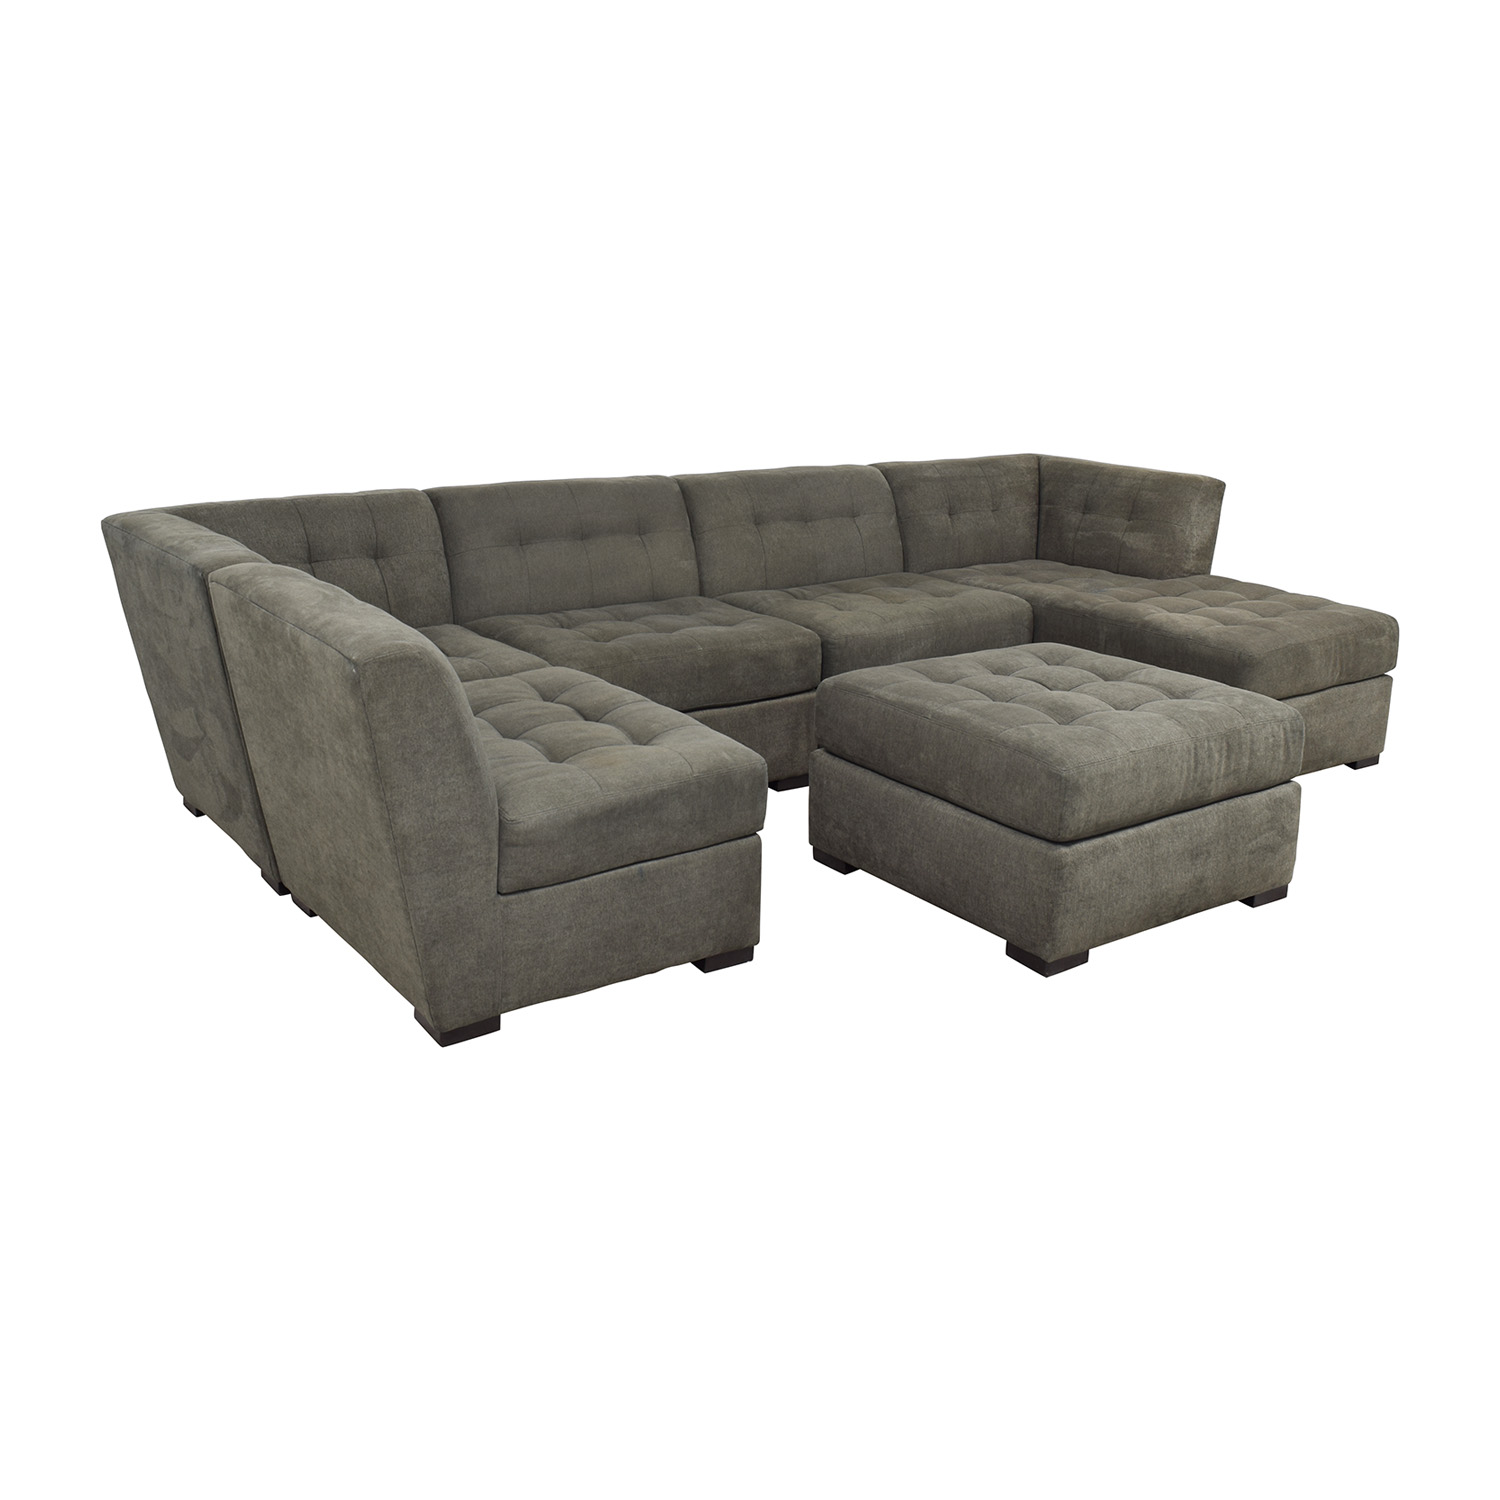 Wondrous 82 Off Macys Macys Roxanne Ii Modular Sectional Sofa With Chaise Ottoman Sofas Creativecarmelina Interior Chair Design Creativecarmelinacom